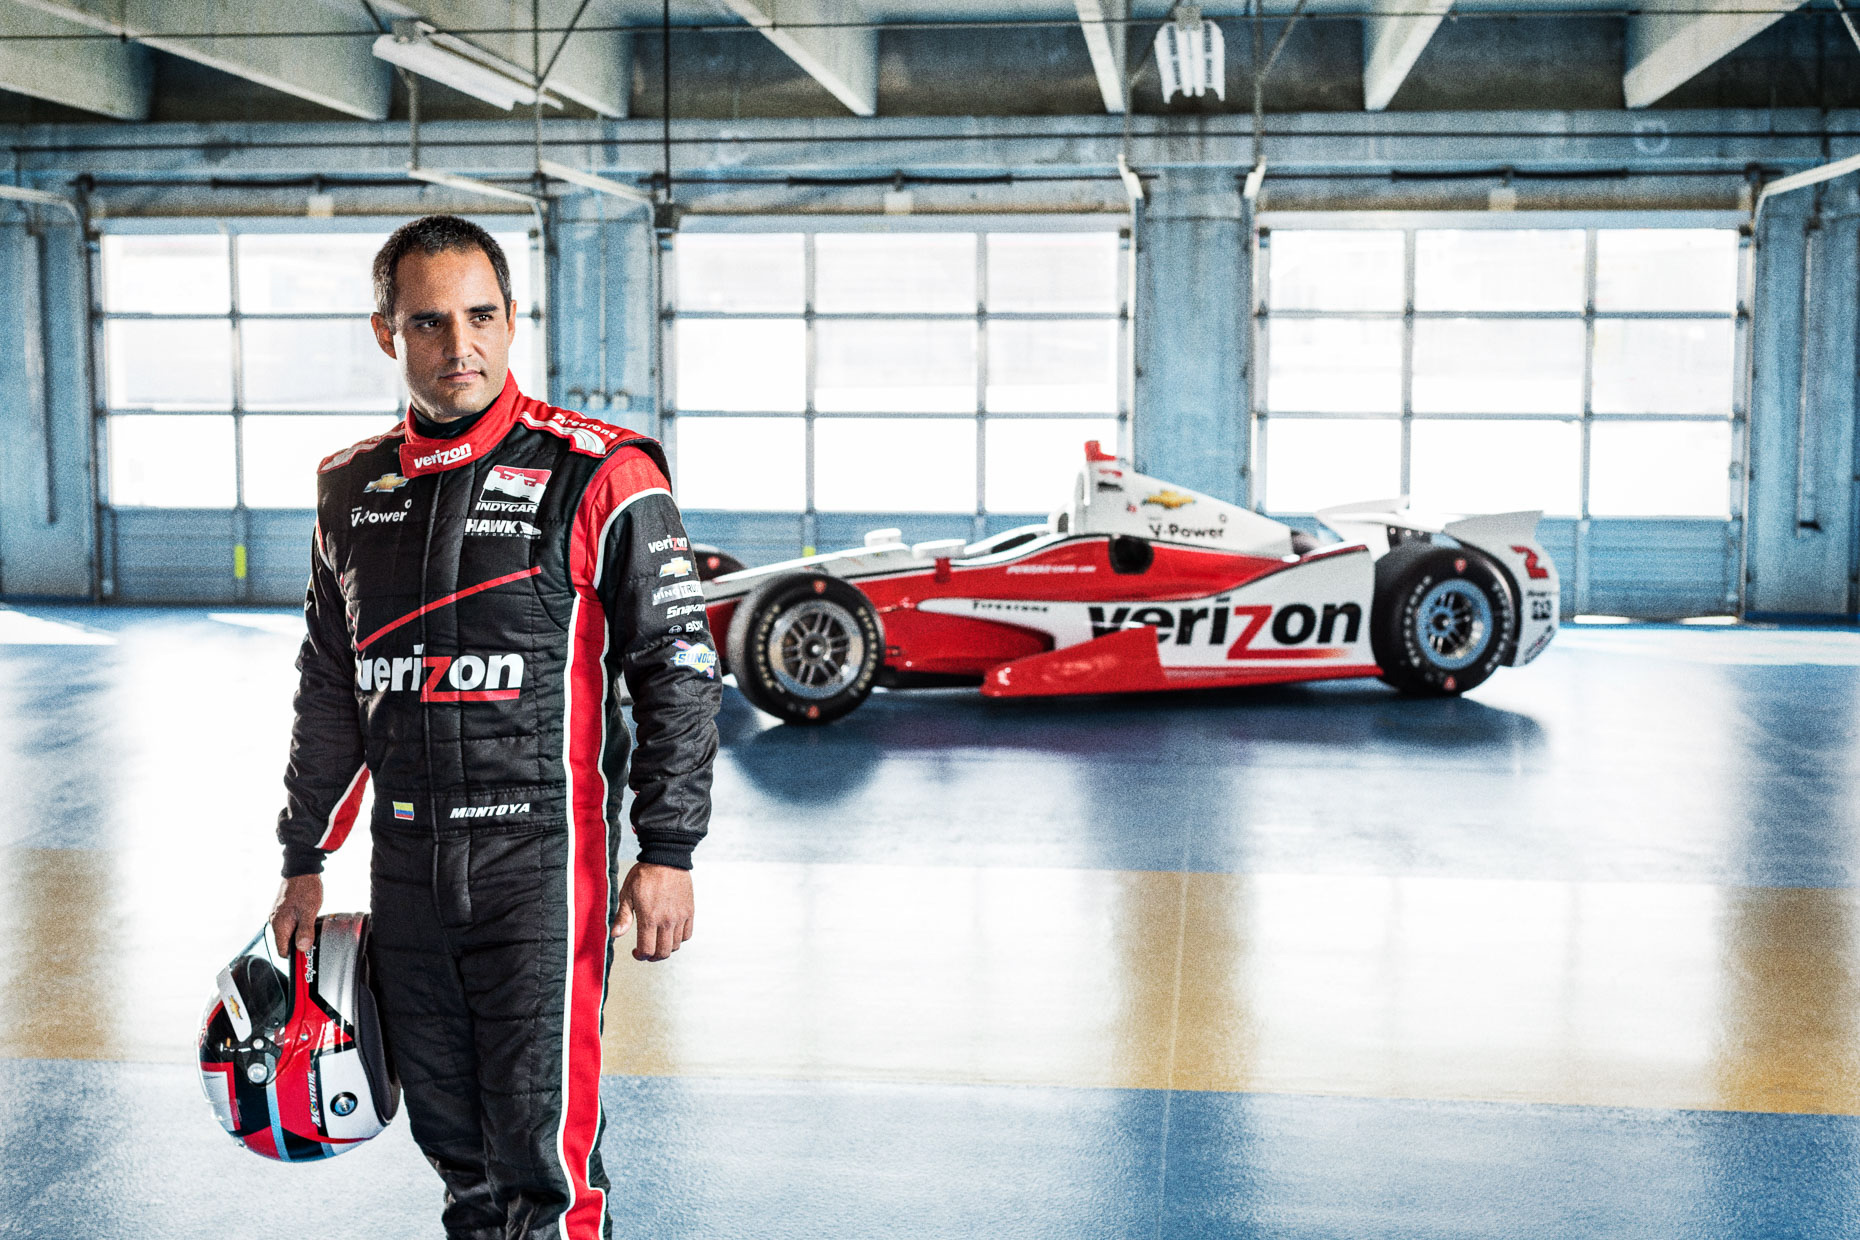 Portrait of athlete Juan Pablo Montoya IndyCar Driver Team Penske Garage Charlotte Motor Speedway by Andy Batt